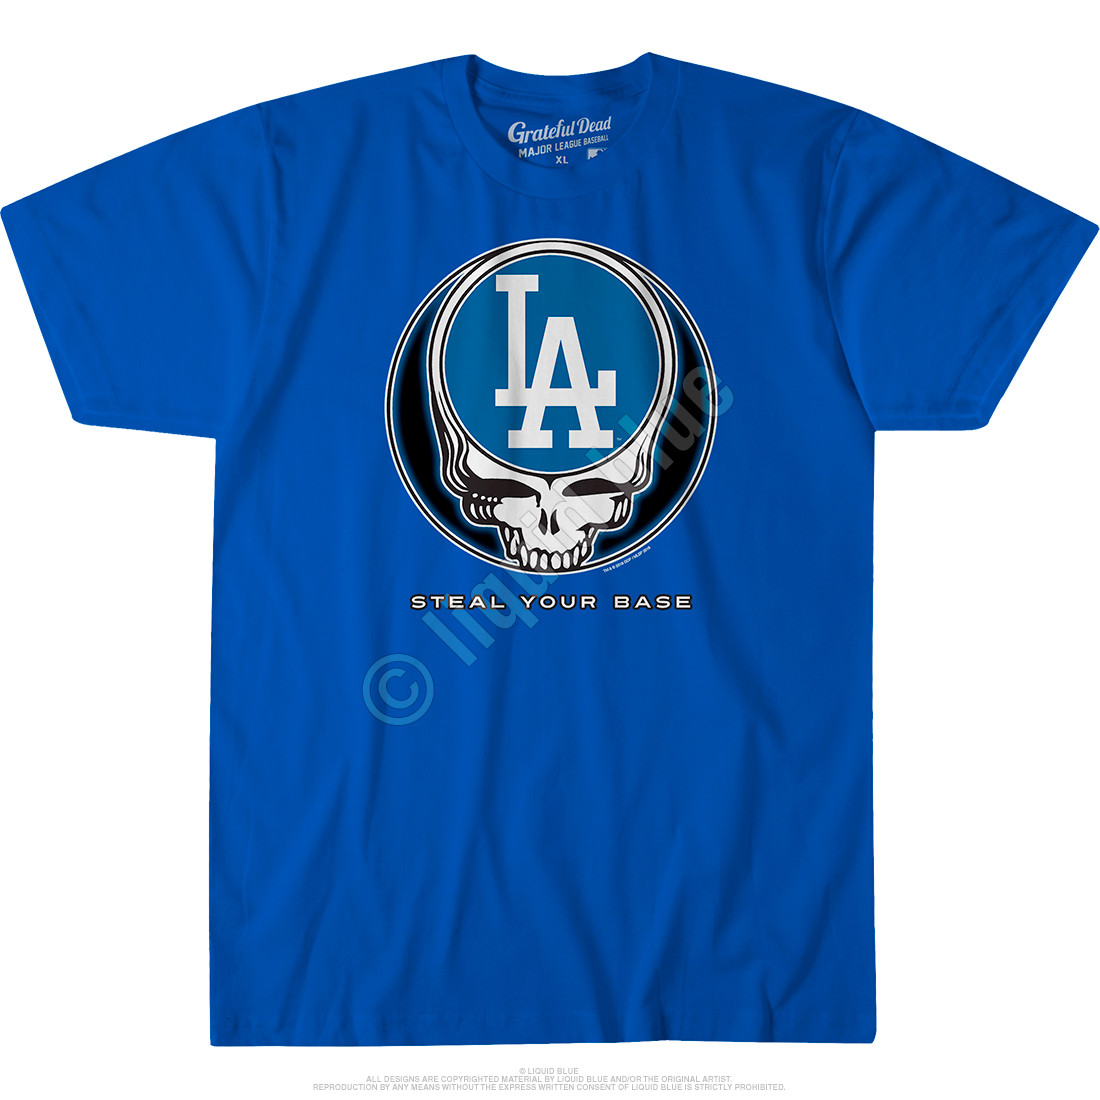 Los Angeles Dodgers Steal Your Base Blue Athletic T-Shirt